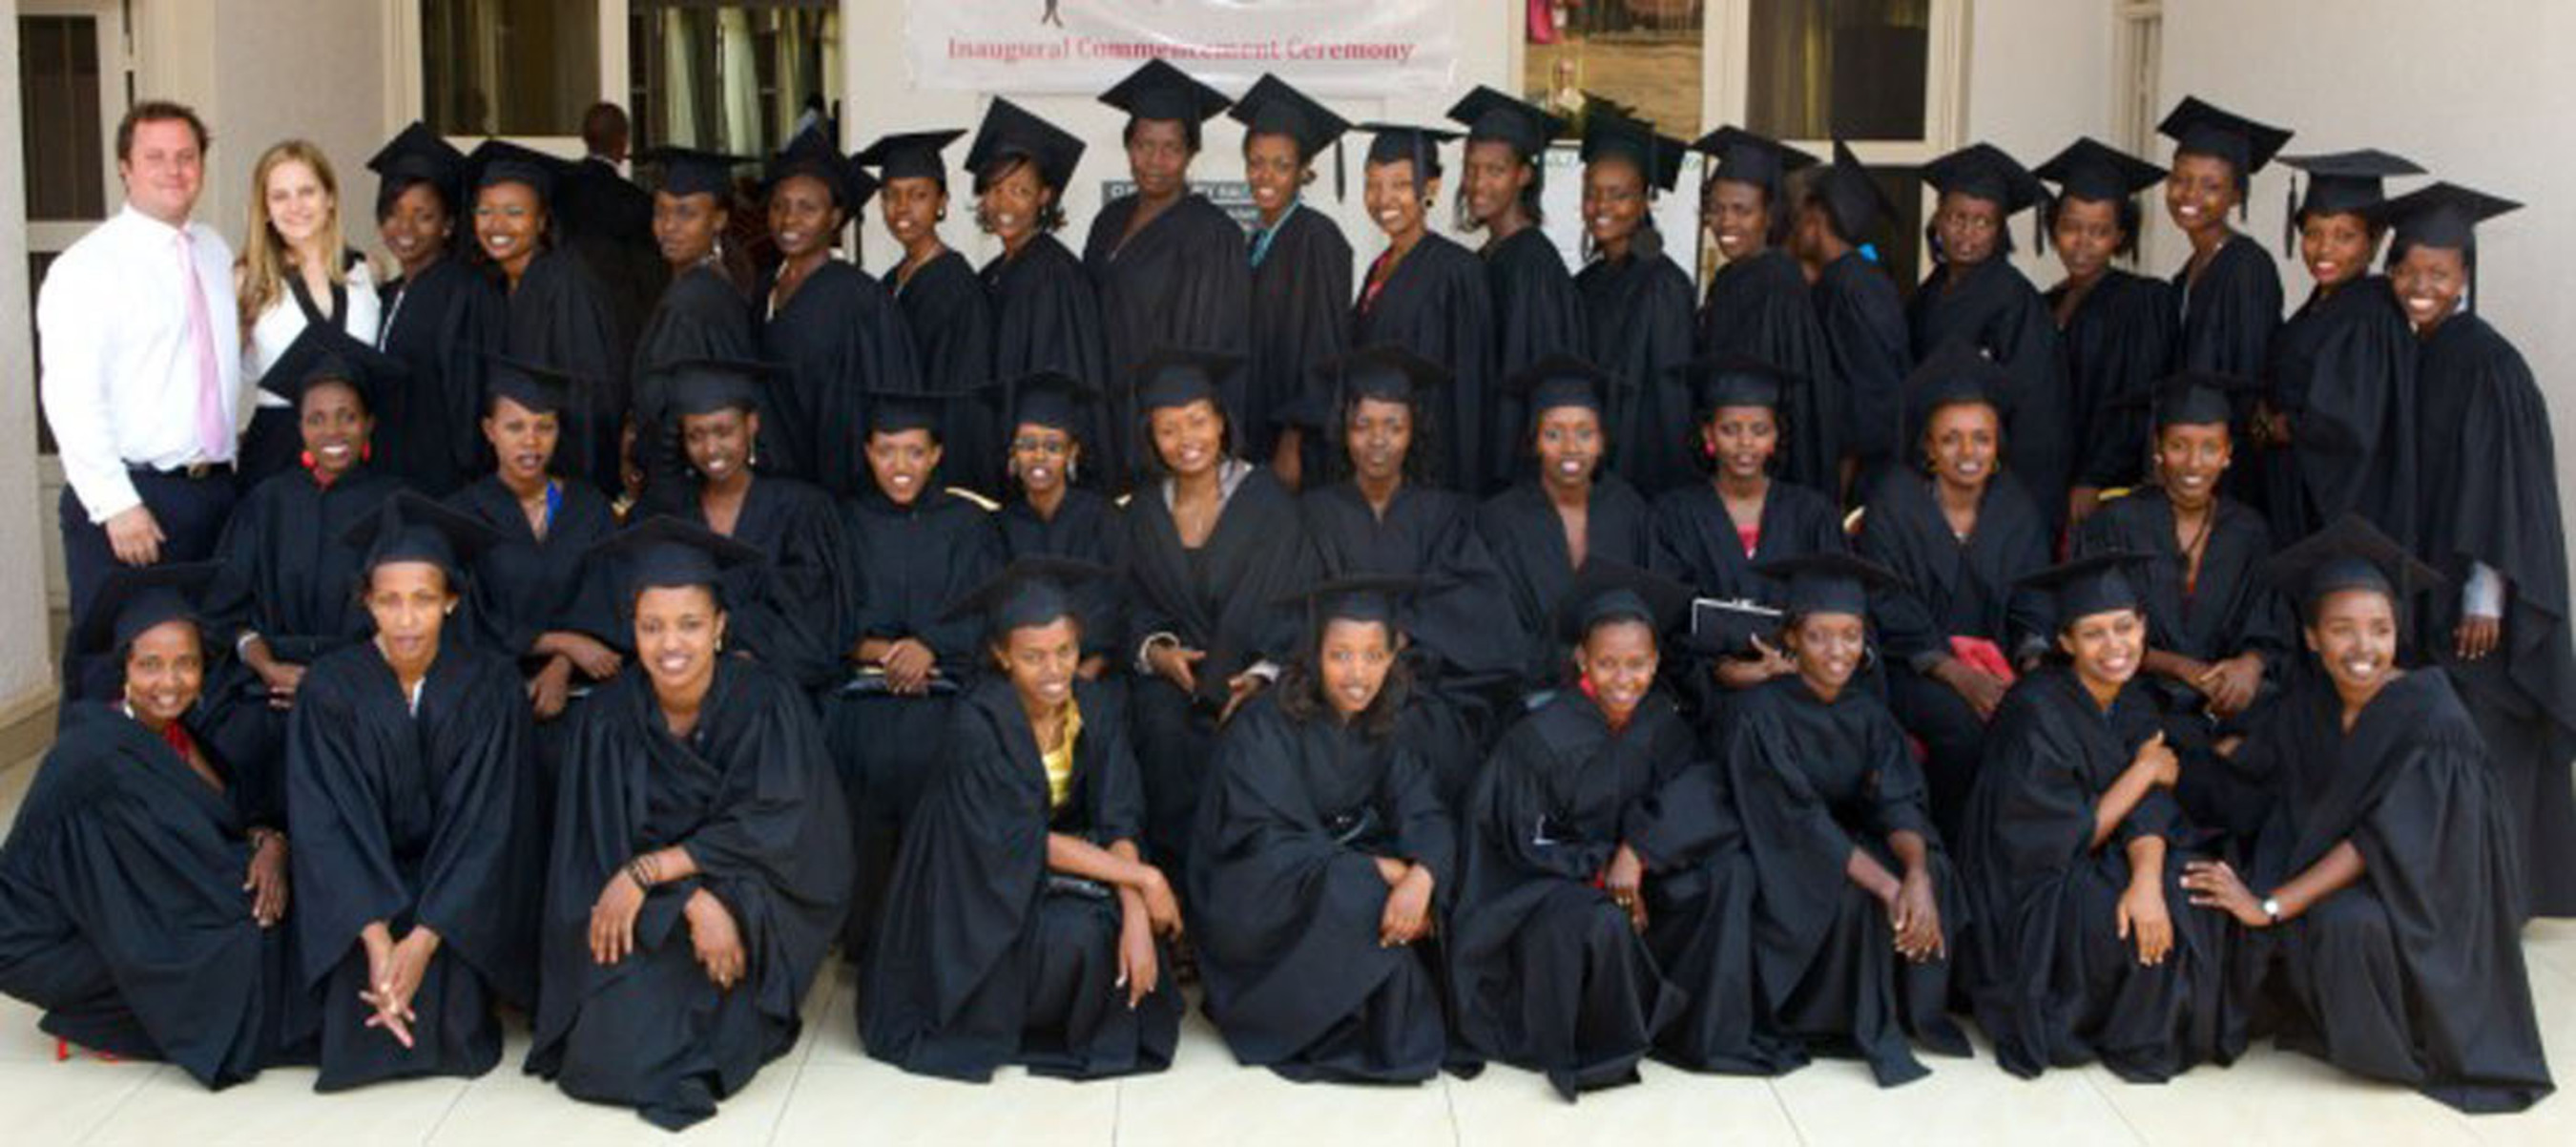 Marriott International Expands Job Partnership for Young African Women. Global Hotel Company Will Bring 24 Additional Graduates, pictured here, from Akilah Institute for Women to Train and Work in its Dubai and Doha Hotels.  (PRNewsFoto/Marriott International)